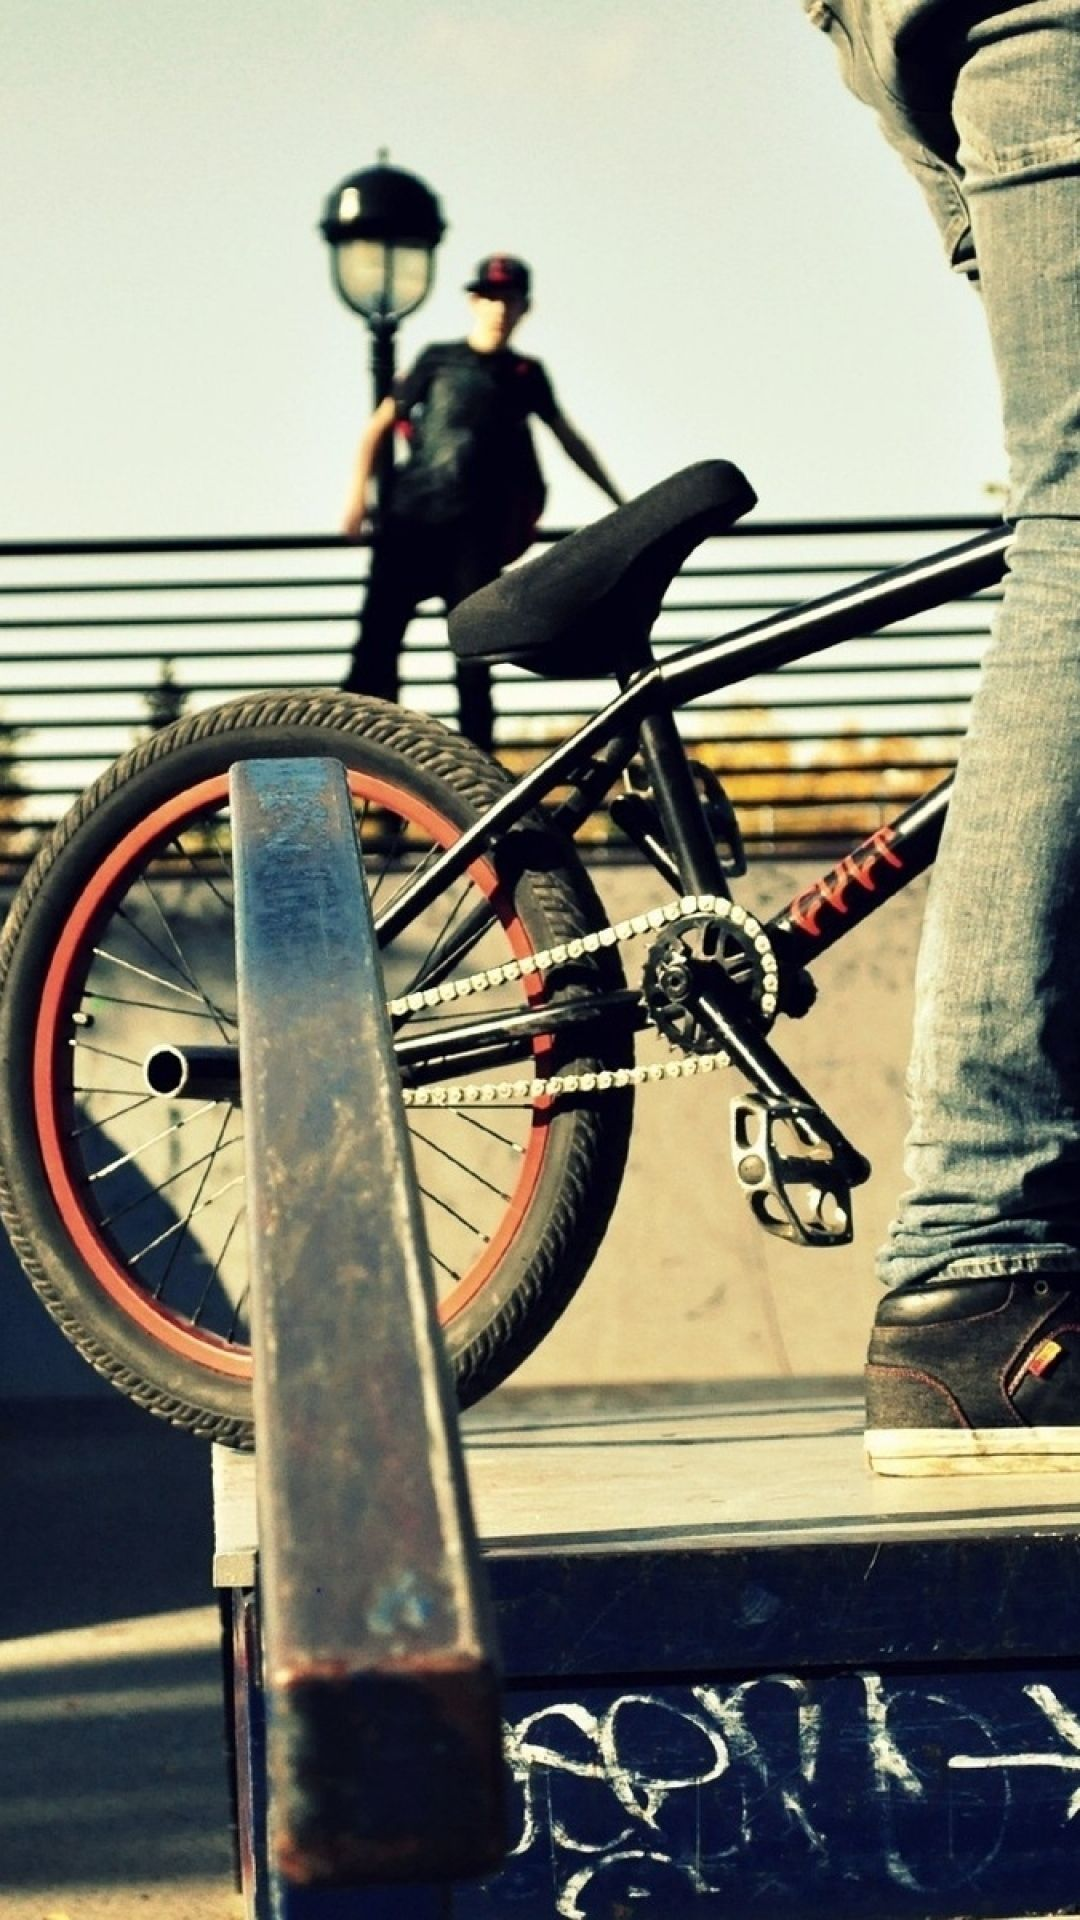 Download Wallpaper 1080x1920 Sports People Bmx Bike Sony Xperia